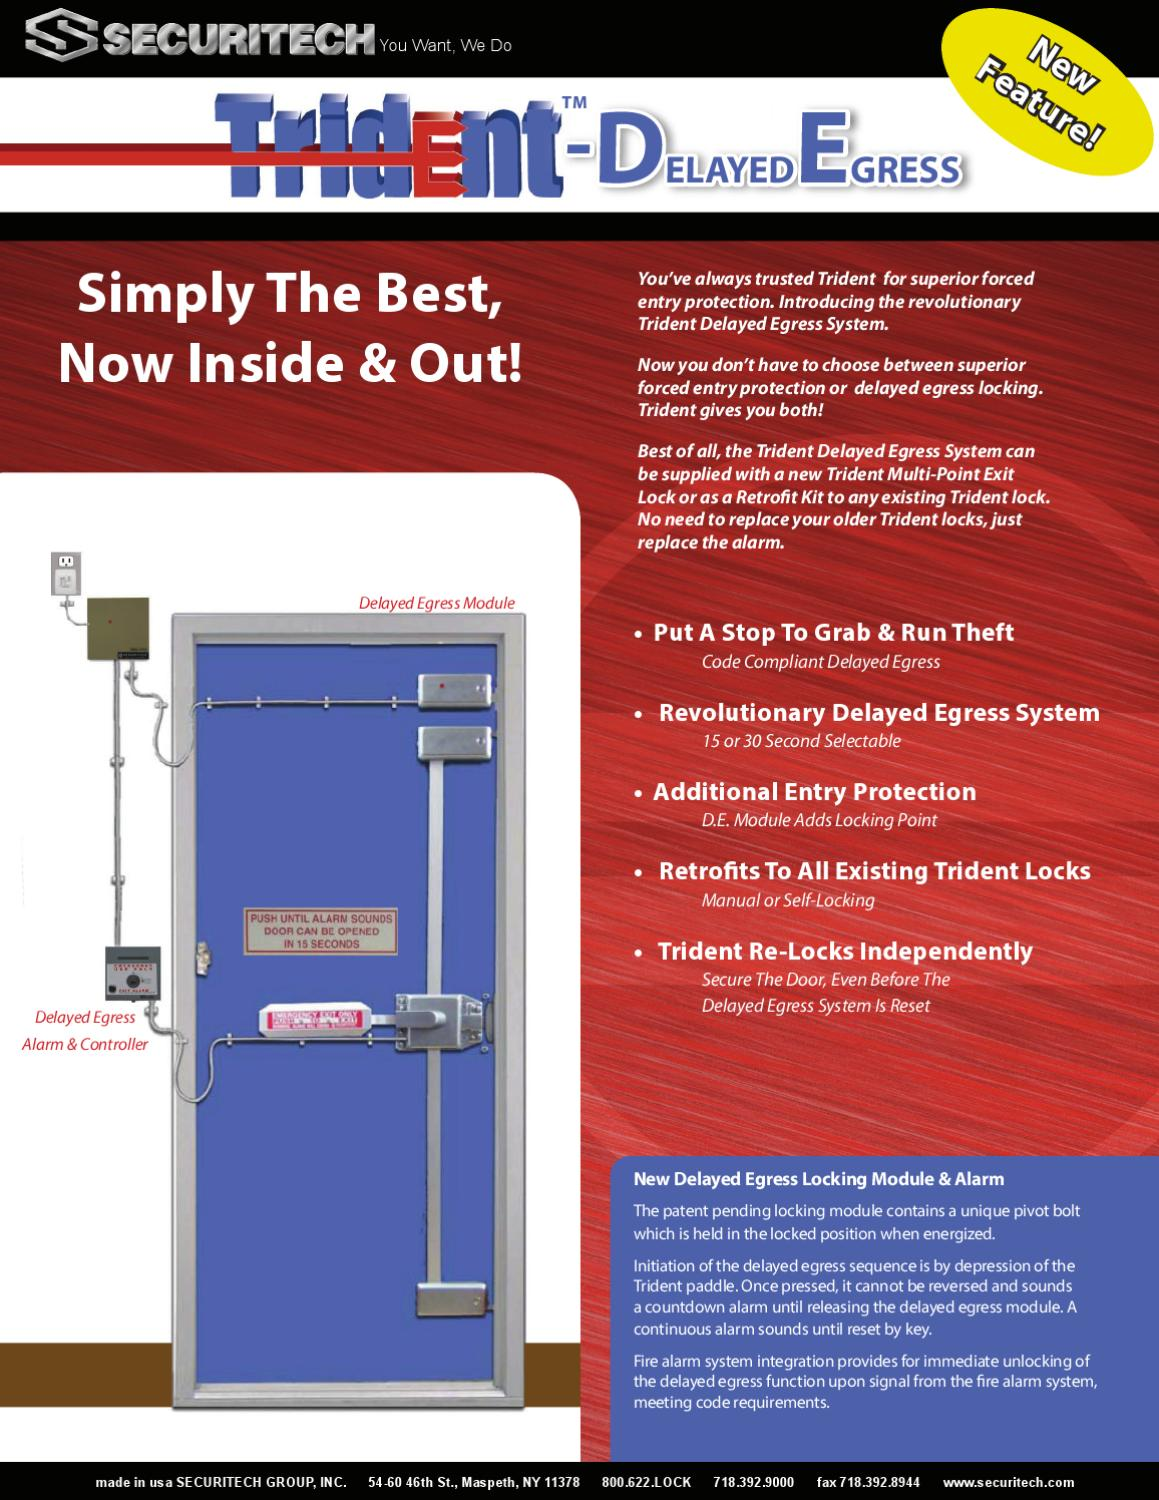 The Trident Delayed Egress System By Securitech Group Inc